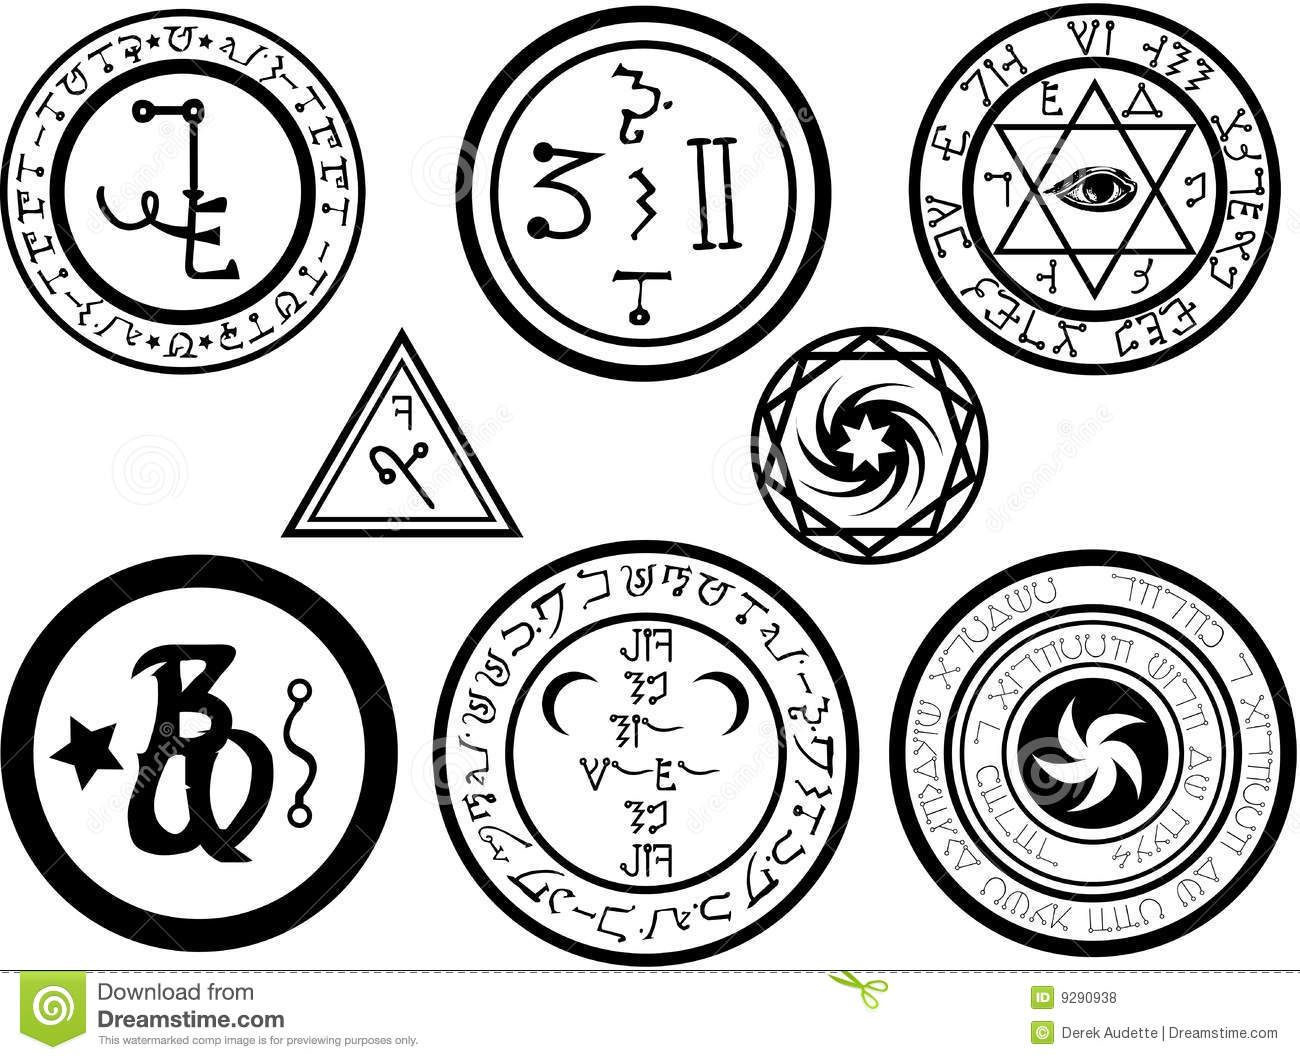 Alchemical symbols and magickal sigils royalty free stock photos mental alchemy symbol meaning buycottarizona